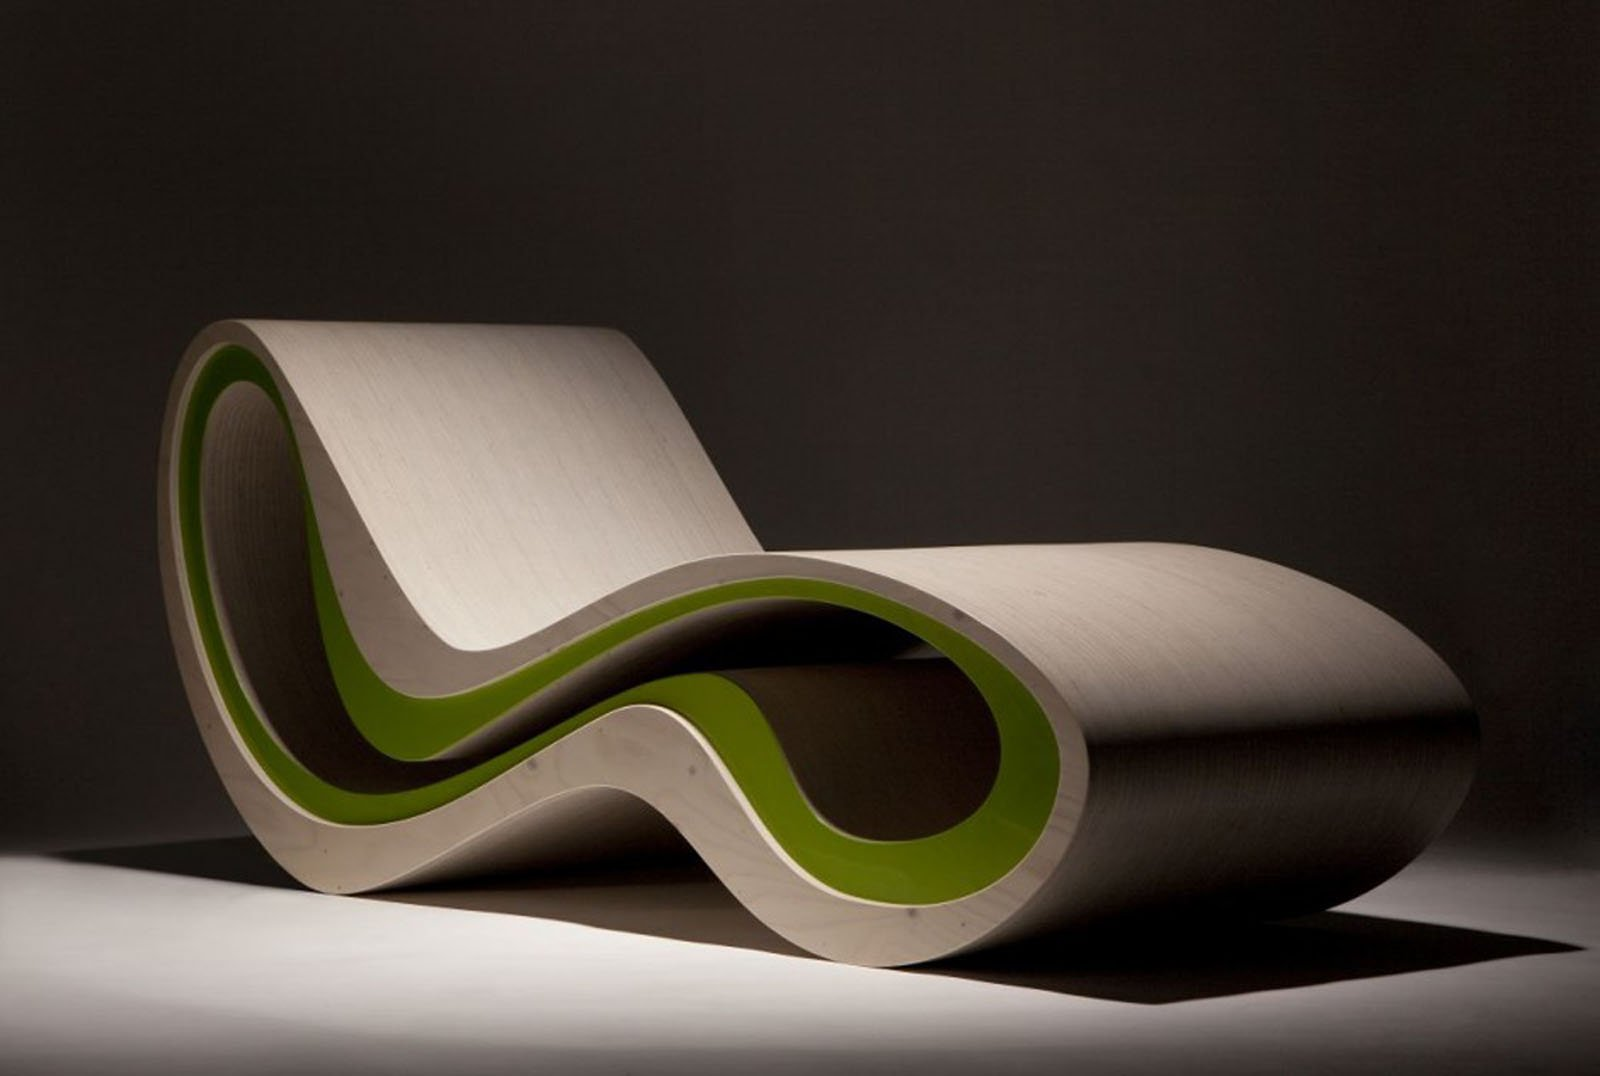 Some Incredible Designs Of Innovative Modern Furniture